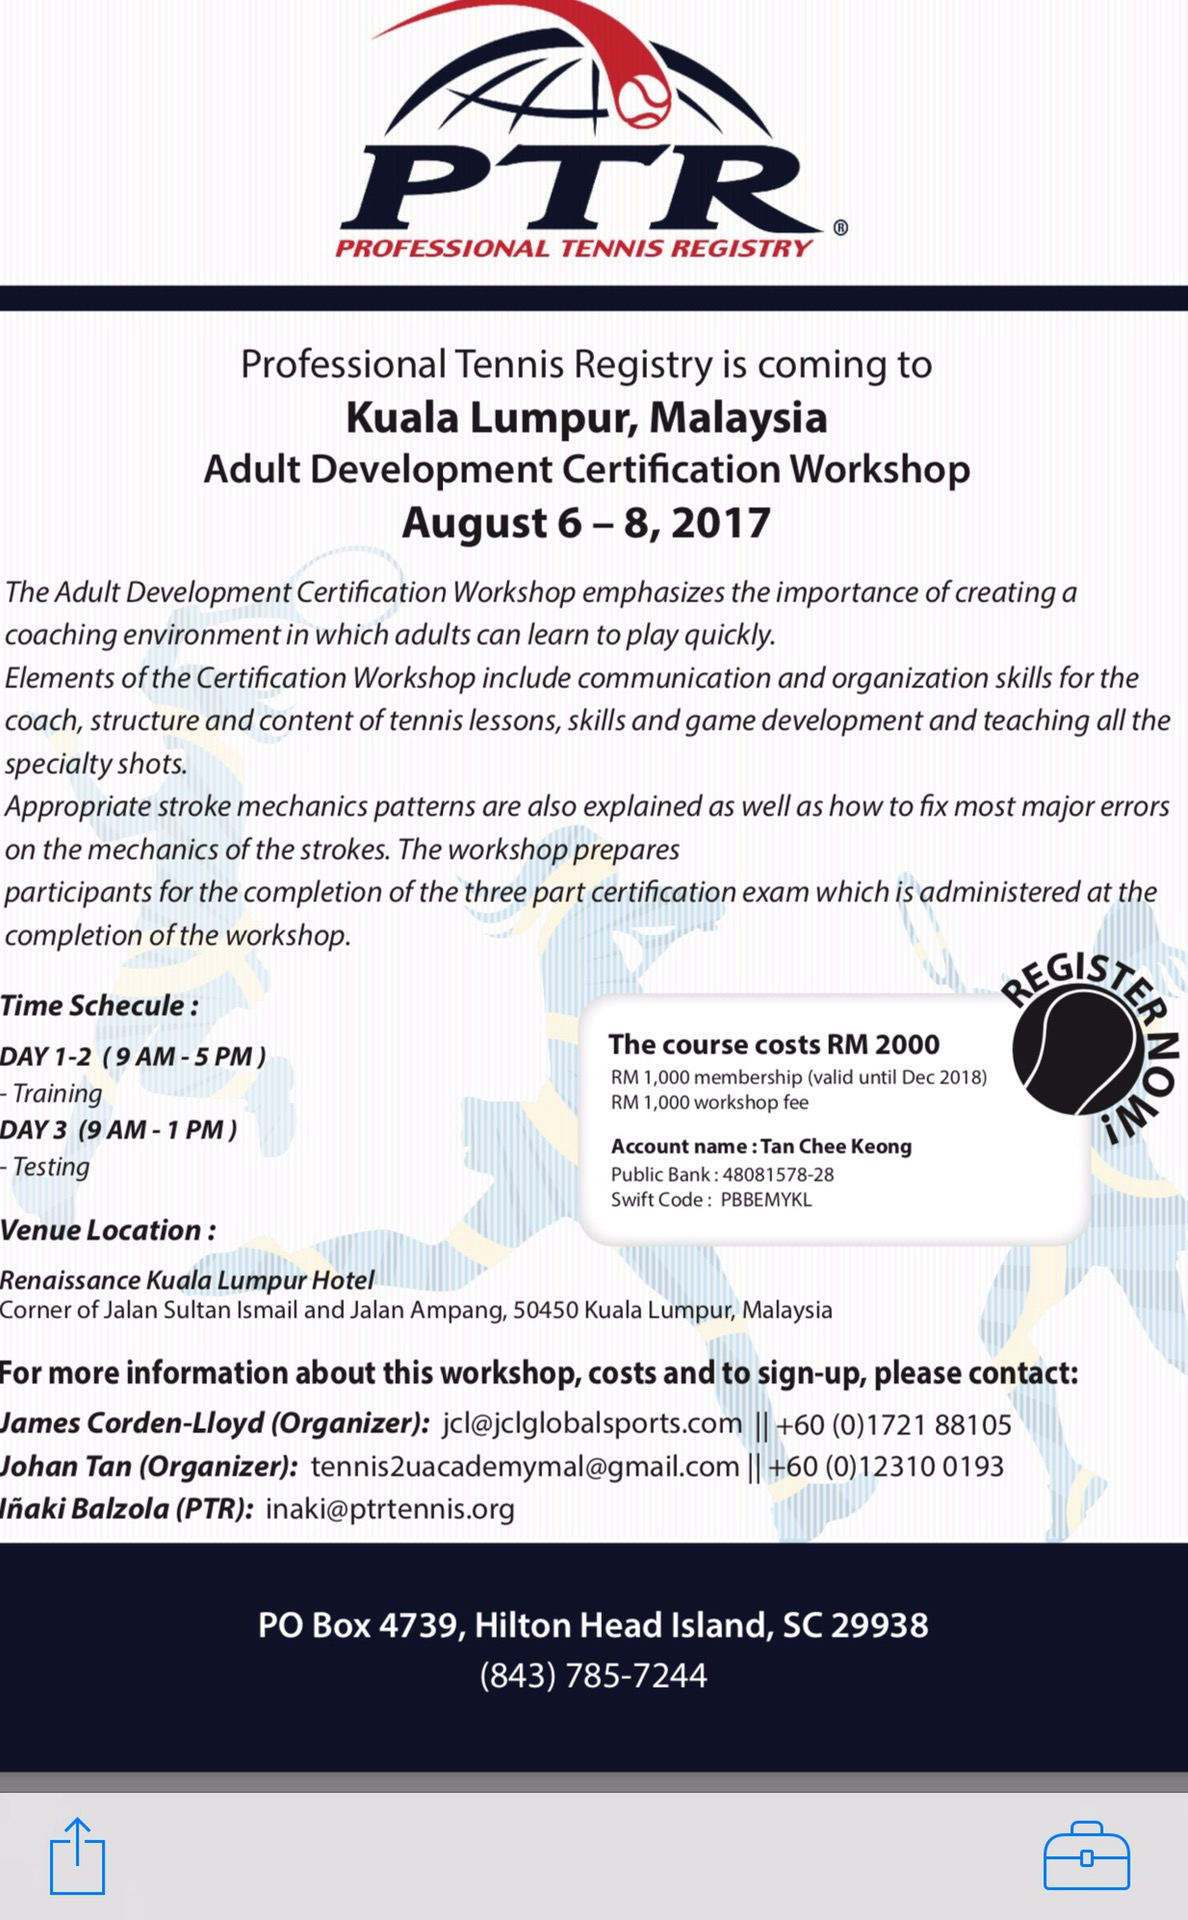 Ptr Adult Development Certification Workshop Malaysia Corden